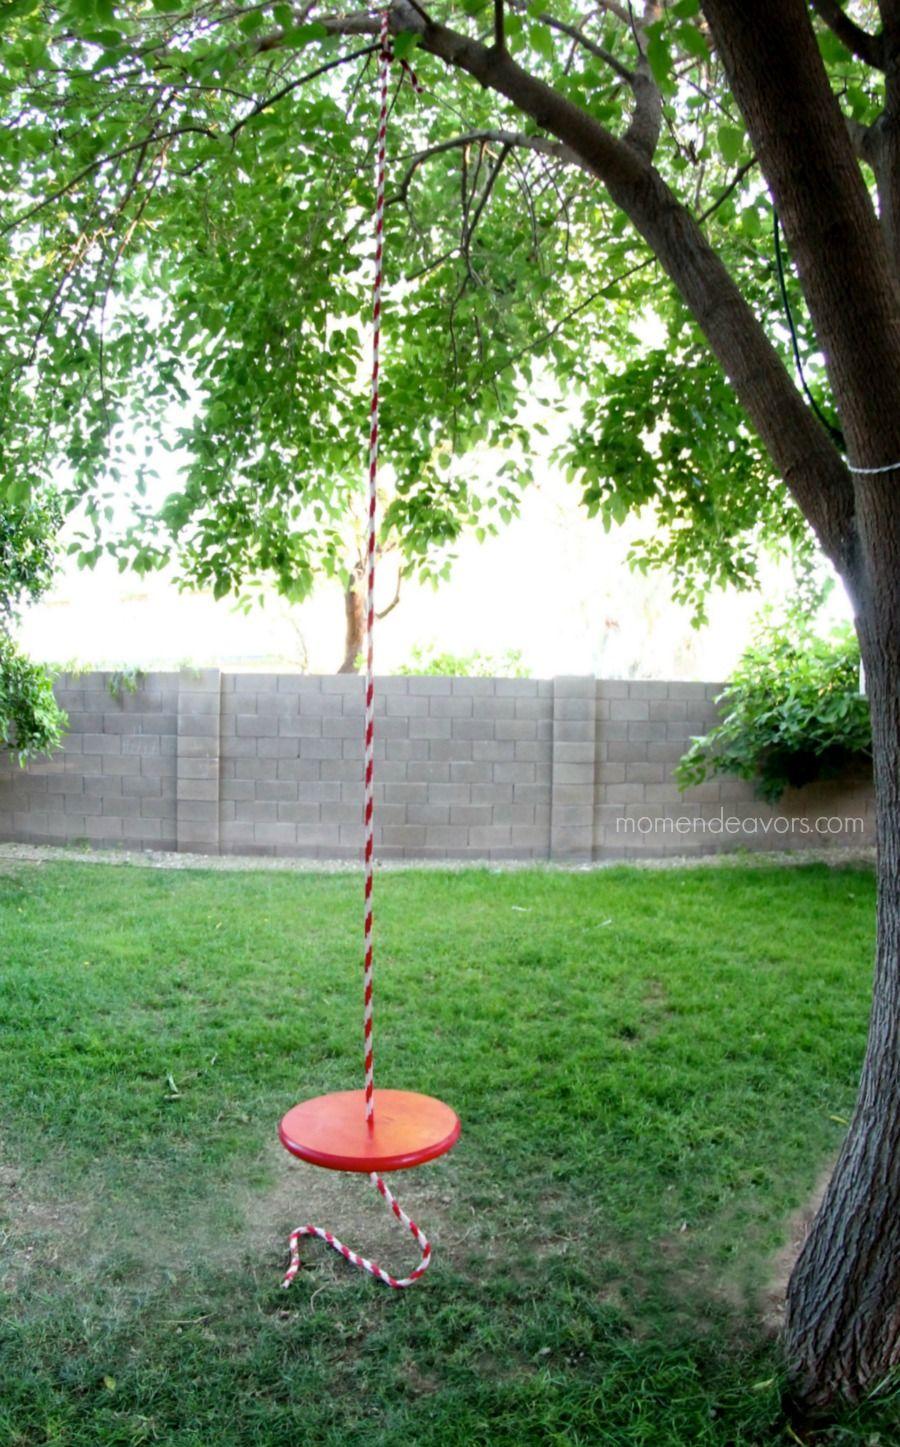 Simple Diy Tree Swing Swing Set Diy Tree Swing Backyard Playground